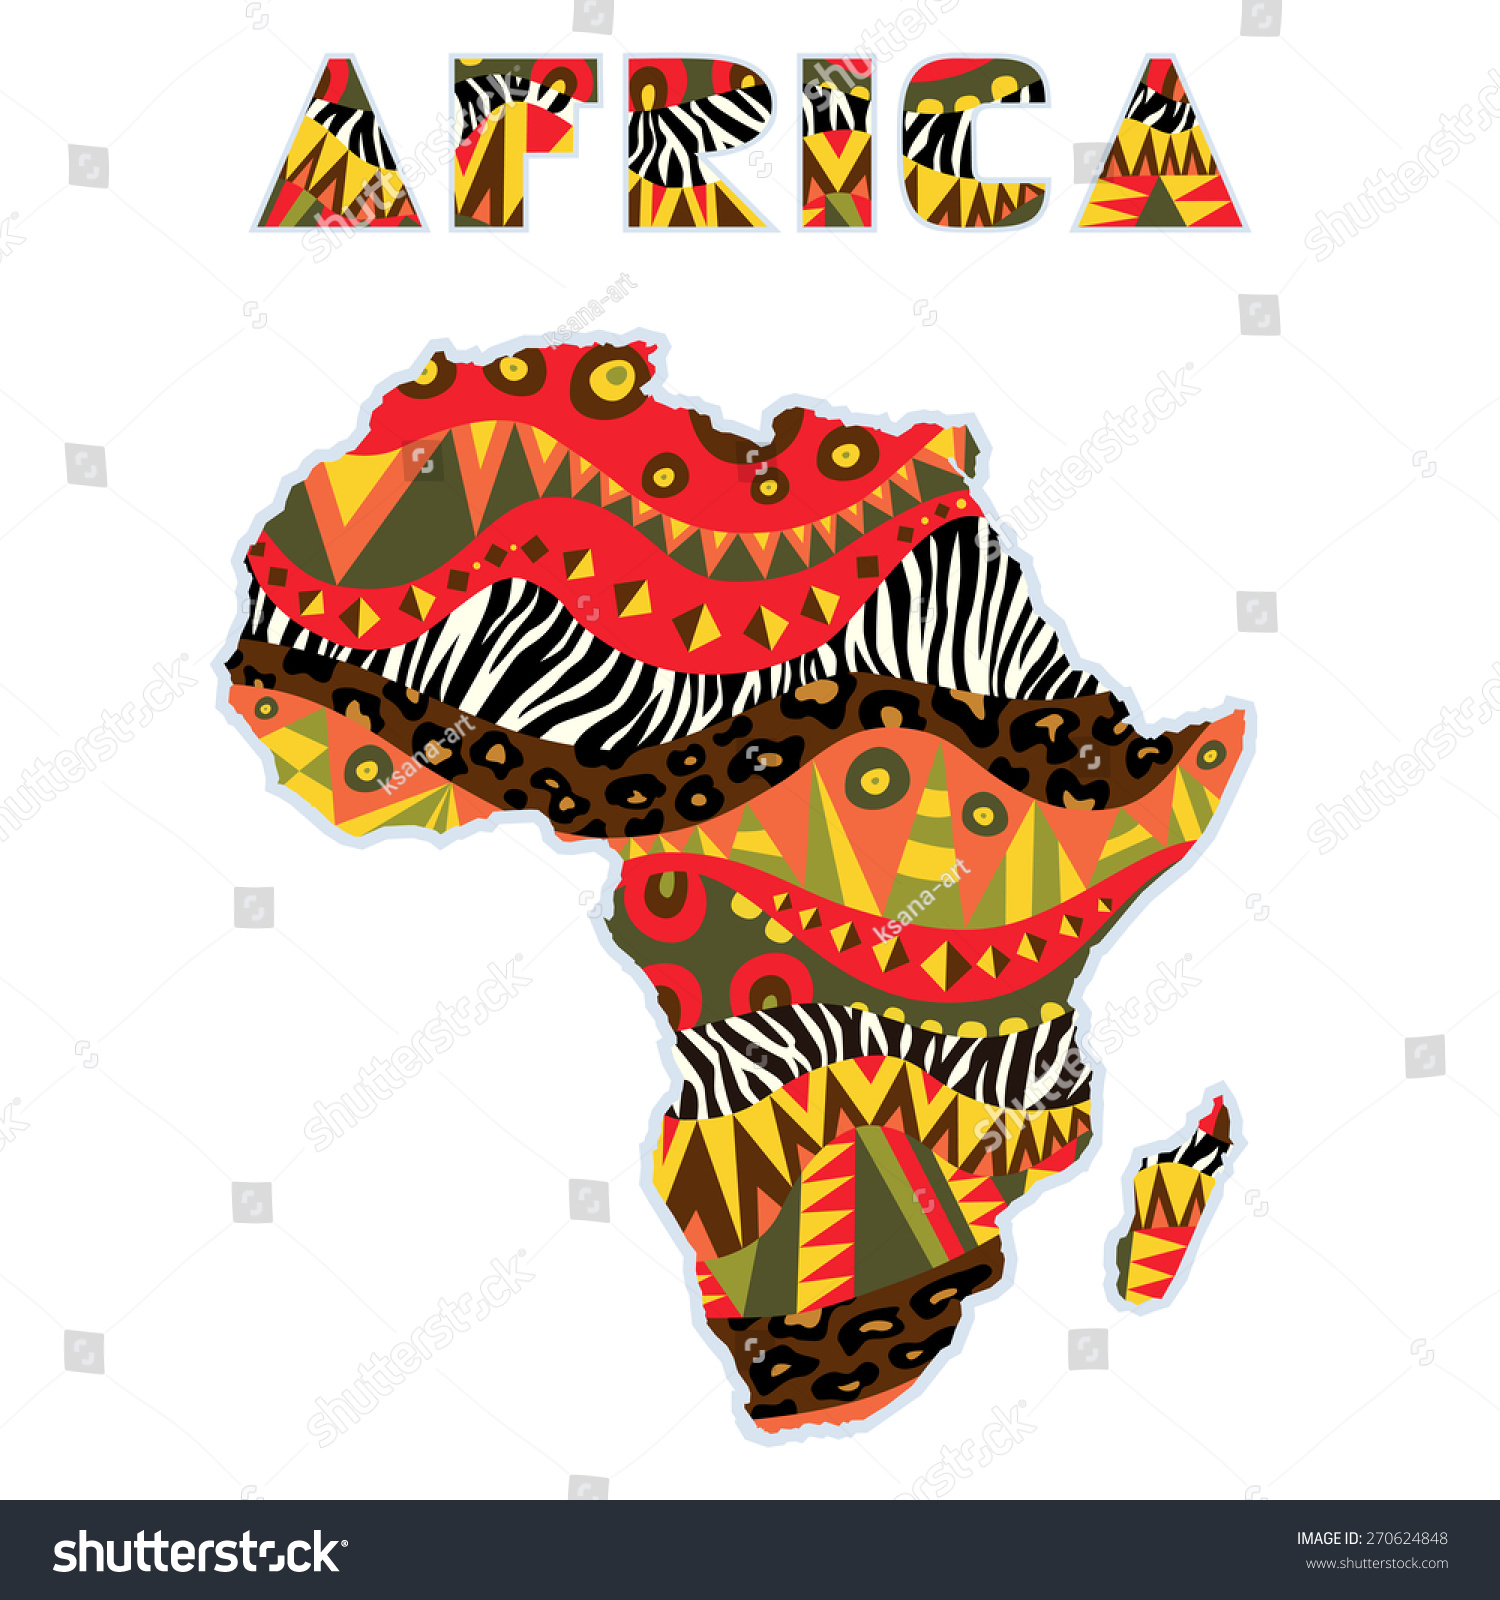 Knitting Color Design Inspiration From Around The World : African most popular colors ornate africa continent art